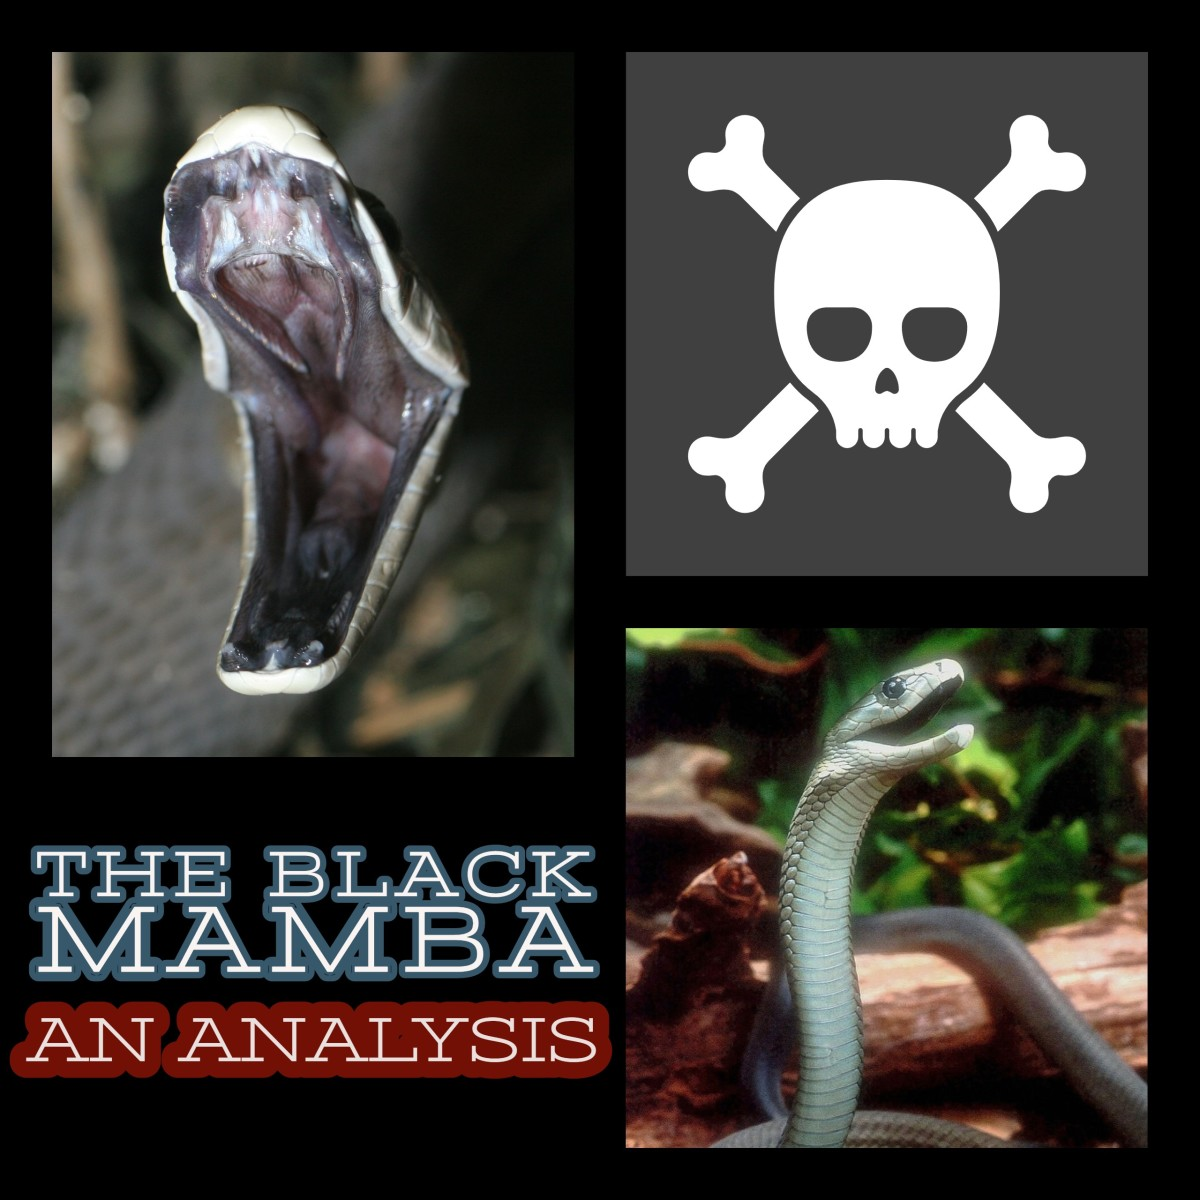 The Black Mamba: Venomous, Aggressive, and Extremely Dangerous